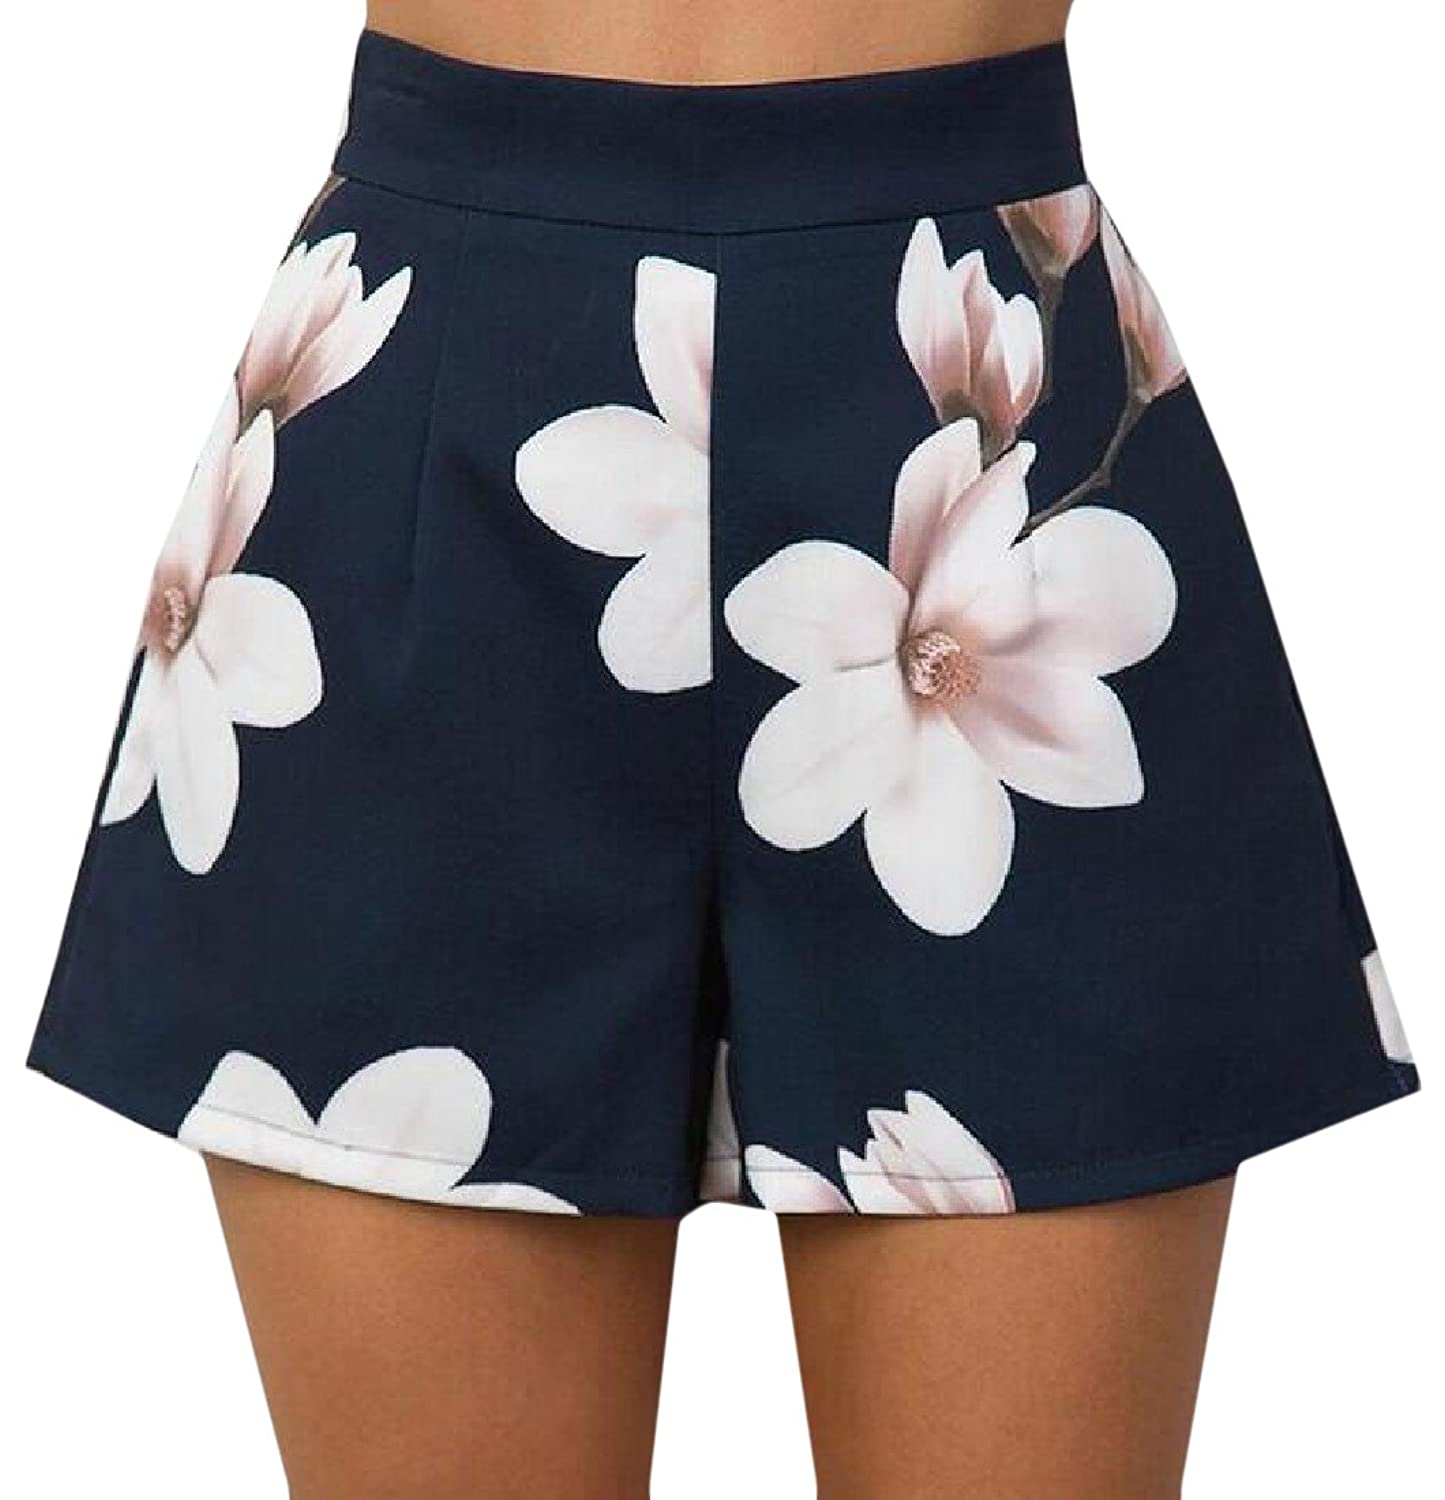 Abetteric Women's Floral Print High Waist Fashion Shorts Hot Pants